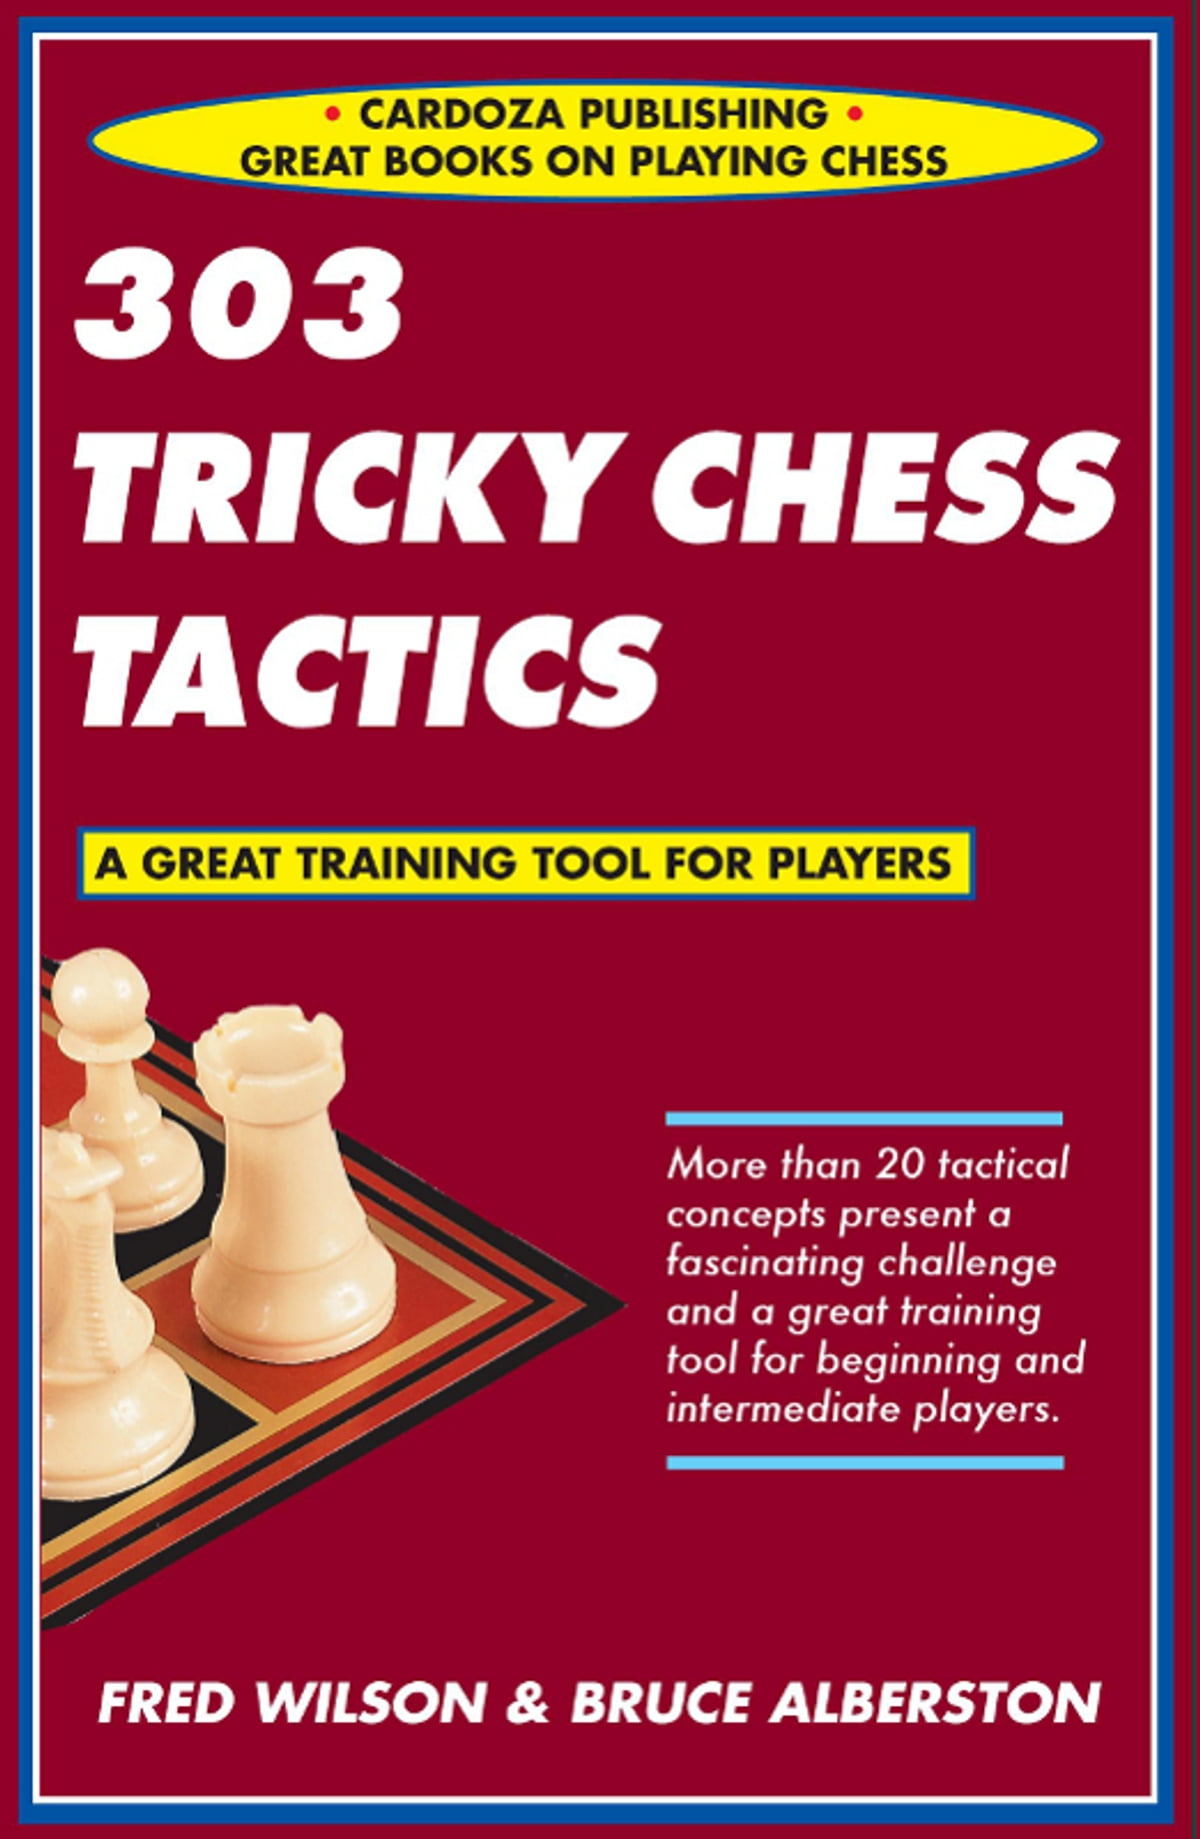 303 Tricky Chess Tactics Ebook By Fred Wilson Bruce Alberston